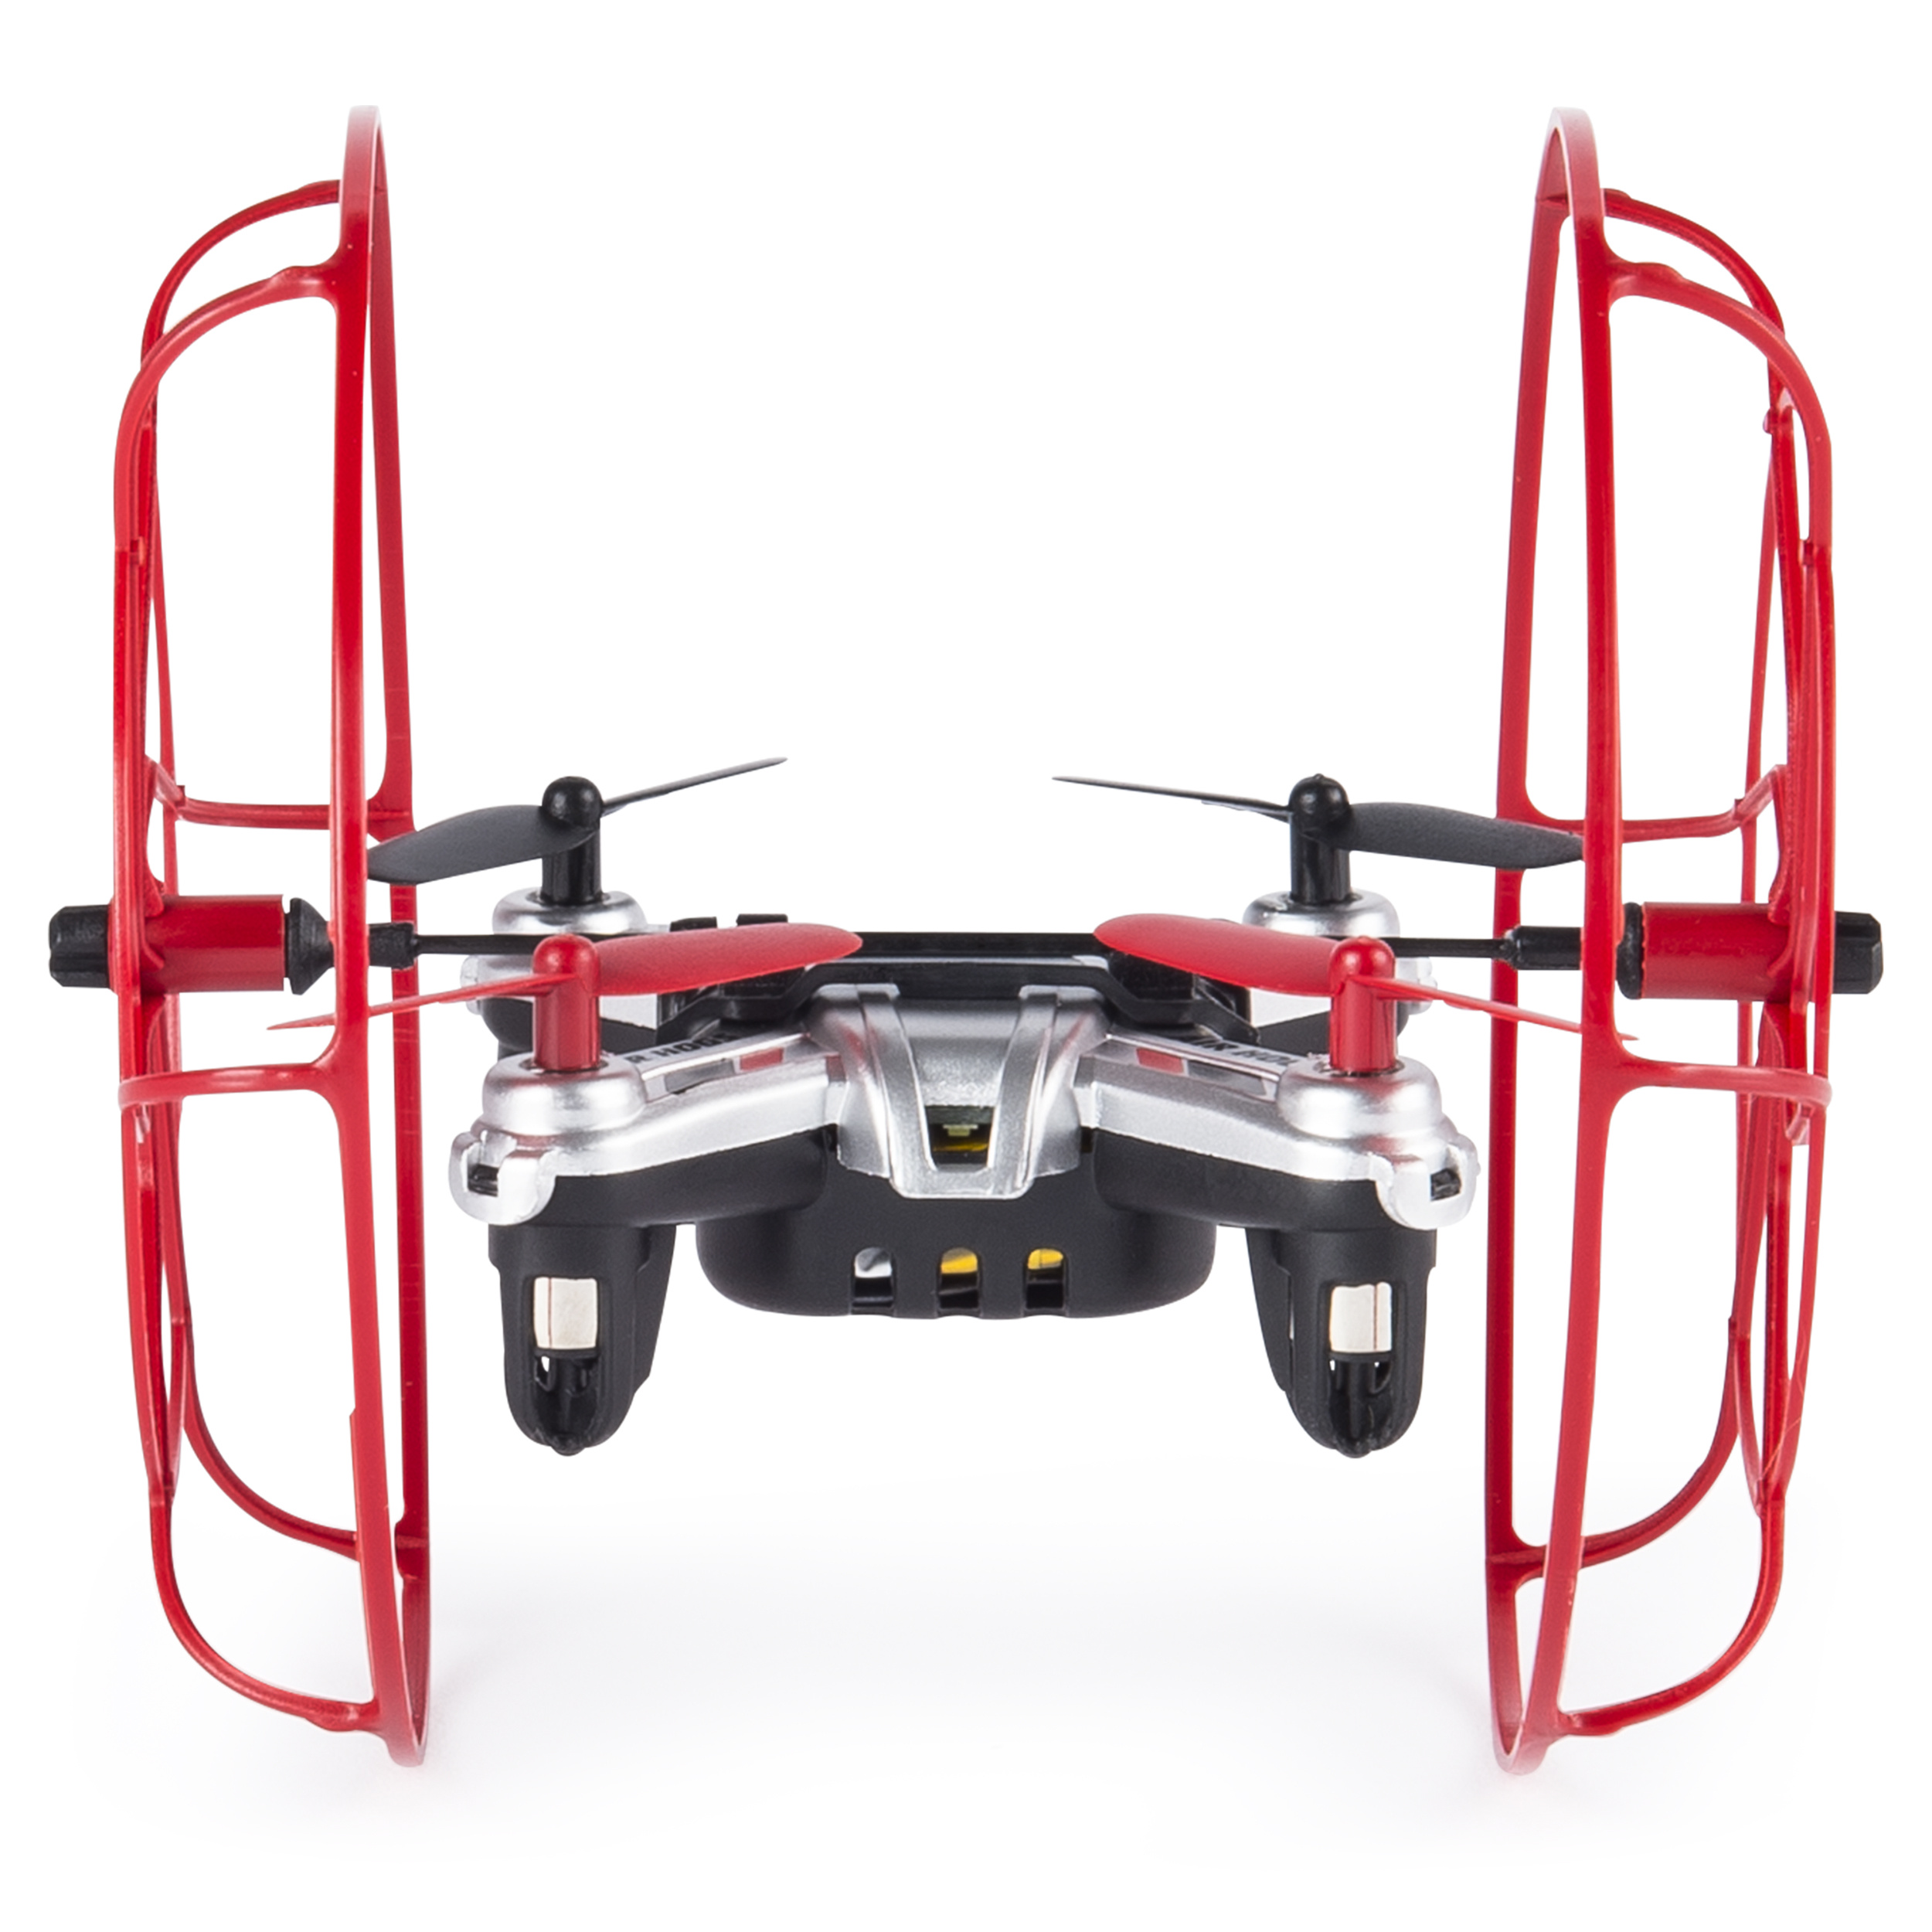 Air Hogs - Hyper Stunt Drone - Unstoppable Micro RC Drone - Red